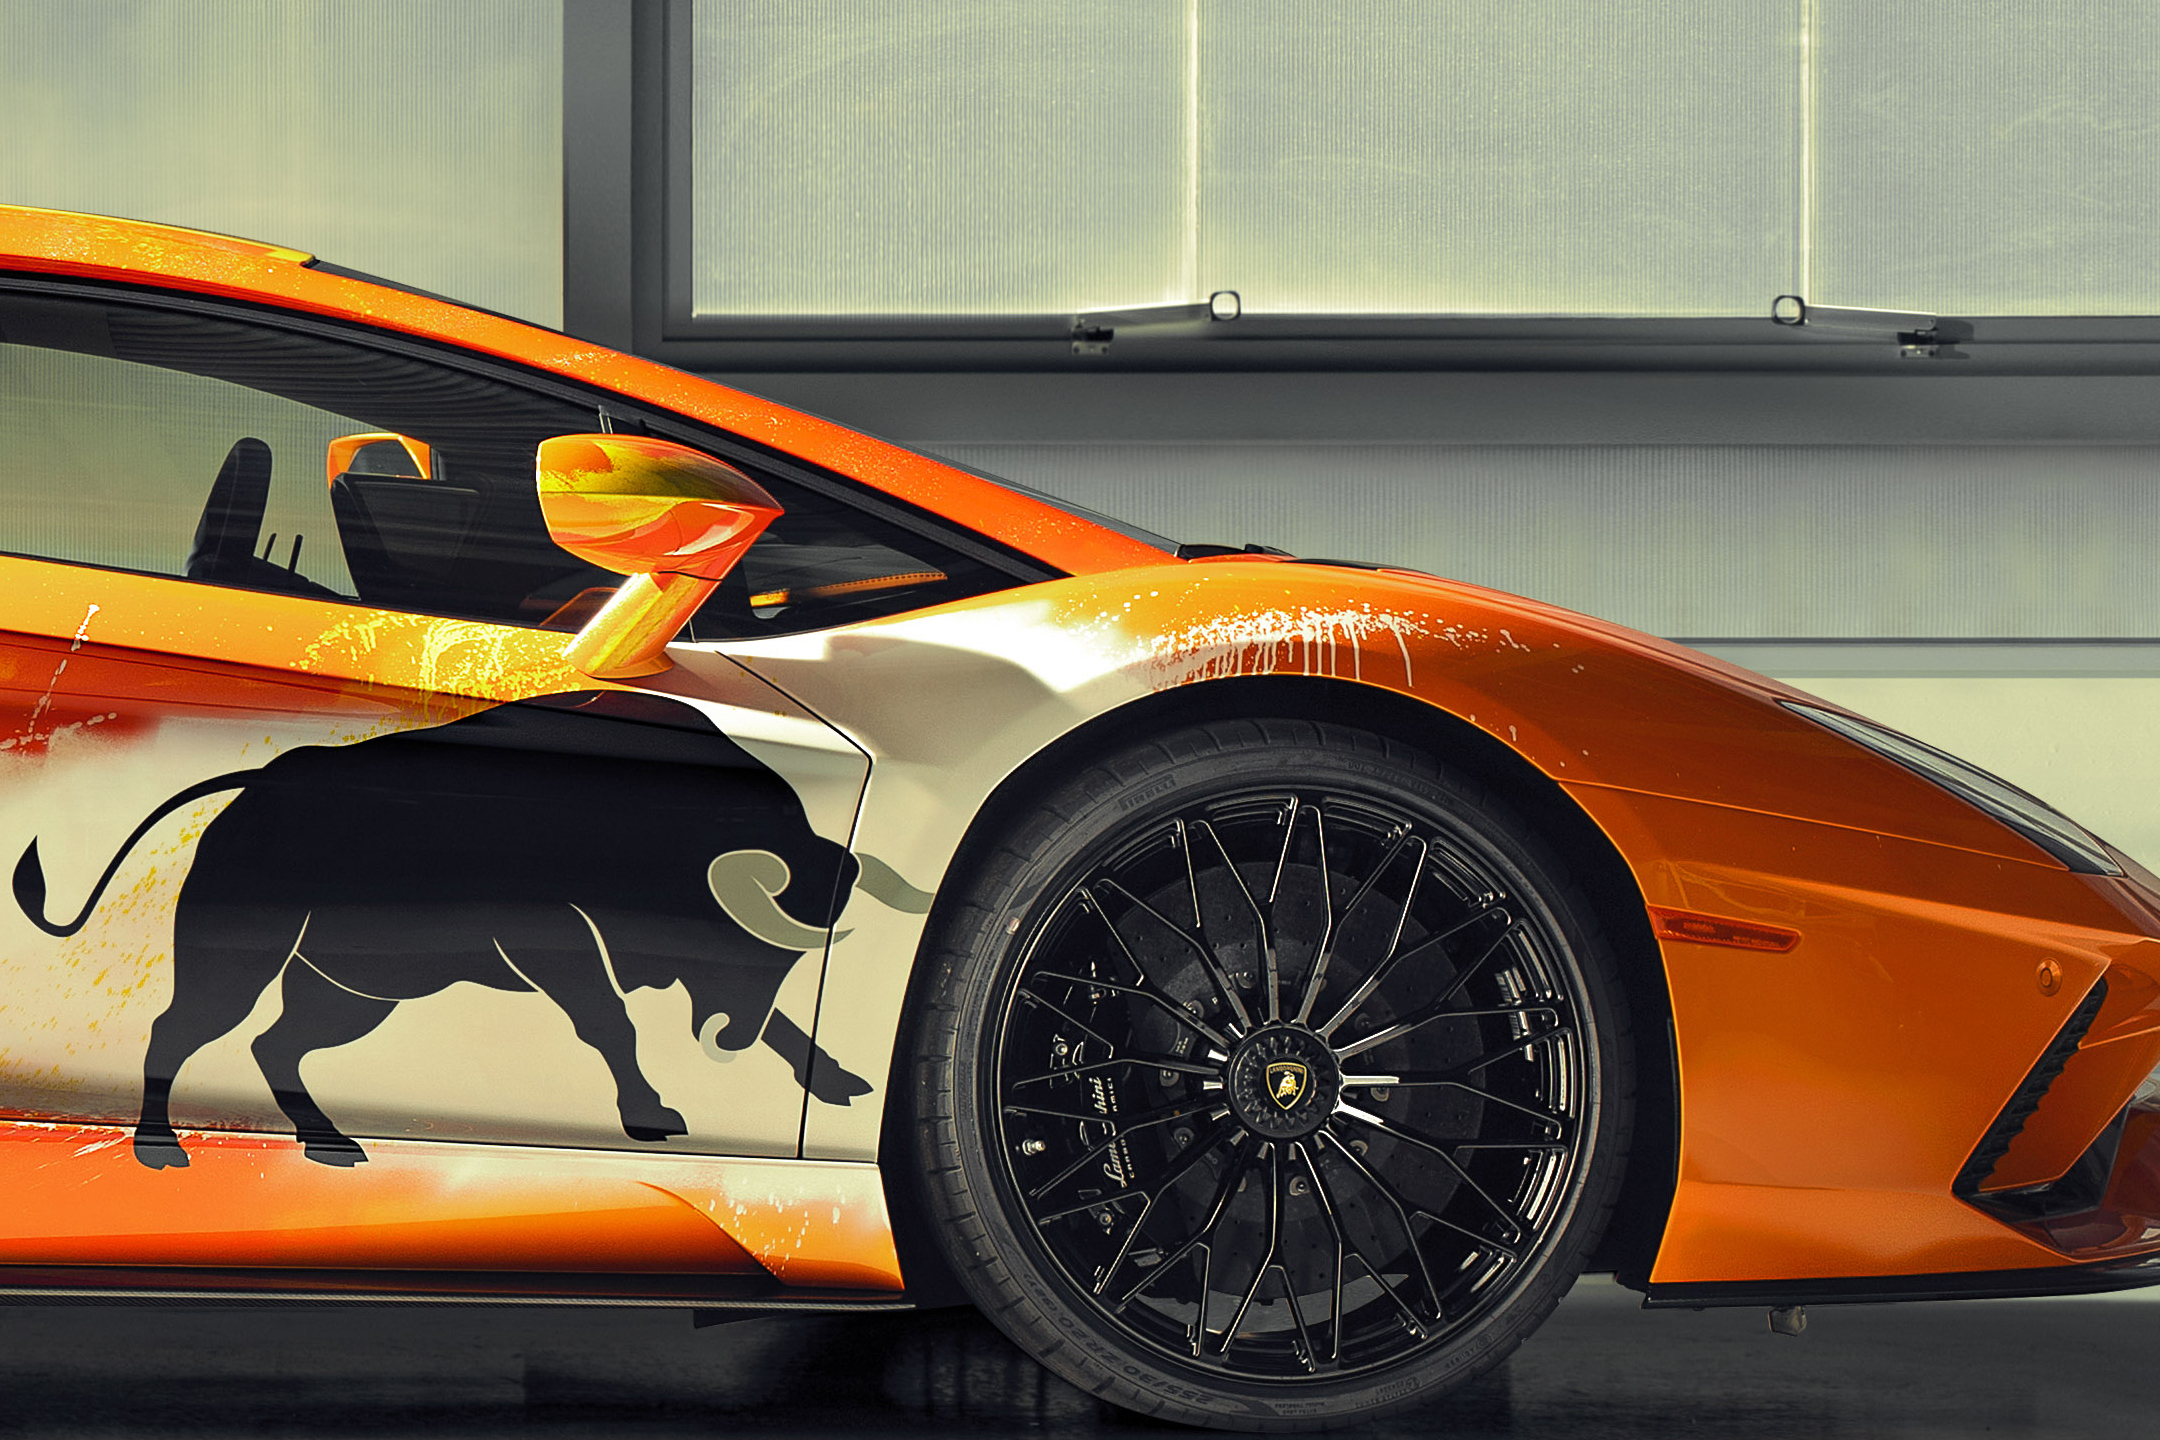 Lamborghini one-off Aventador S by Skyler Grey Art - 2019 - front wheel / jante avant